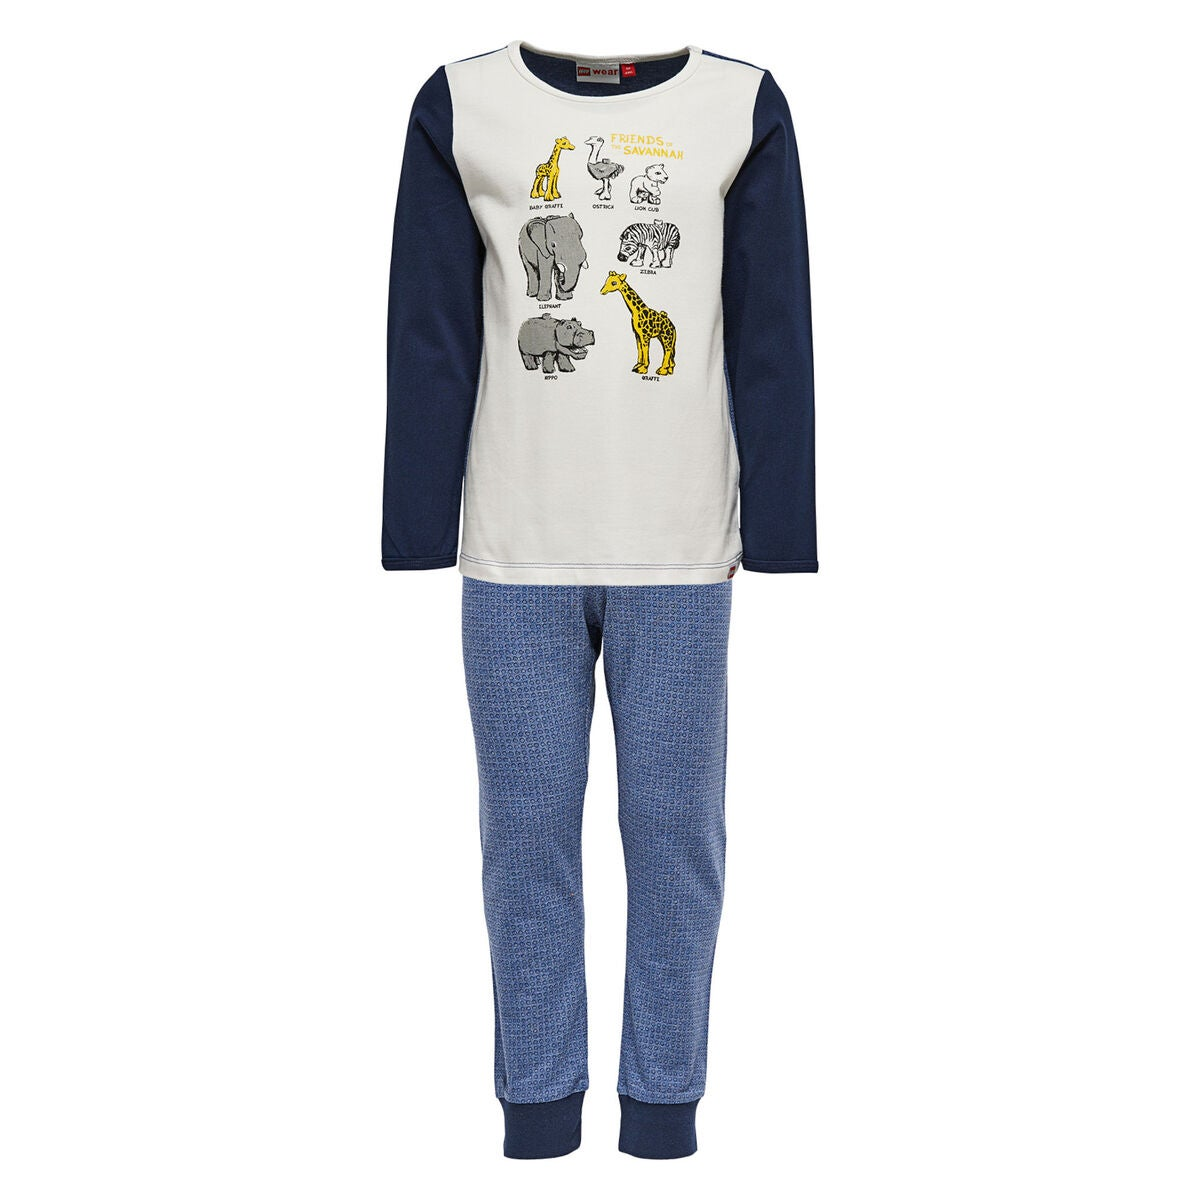 LEGO Wear Nis 706 Pyjama, Dark Navy